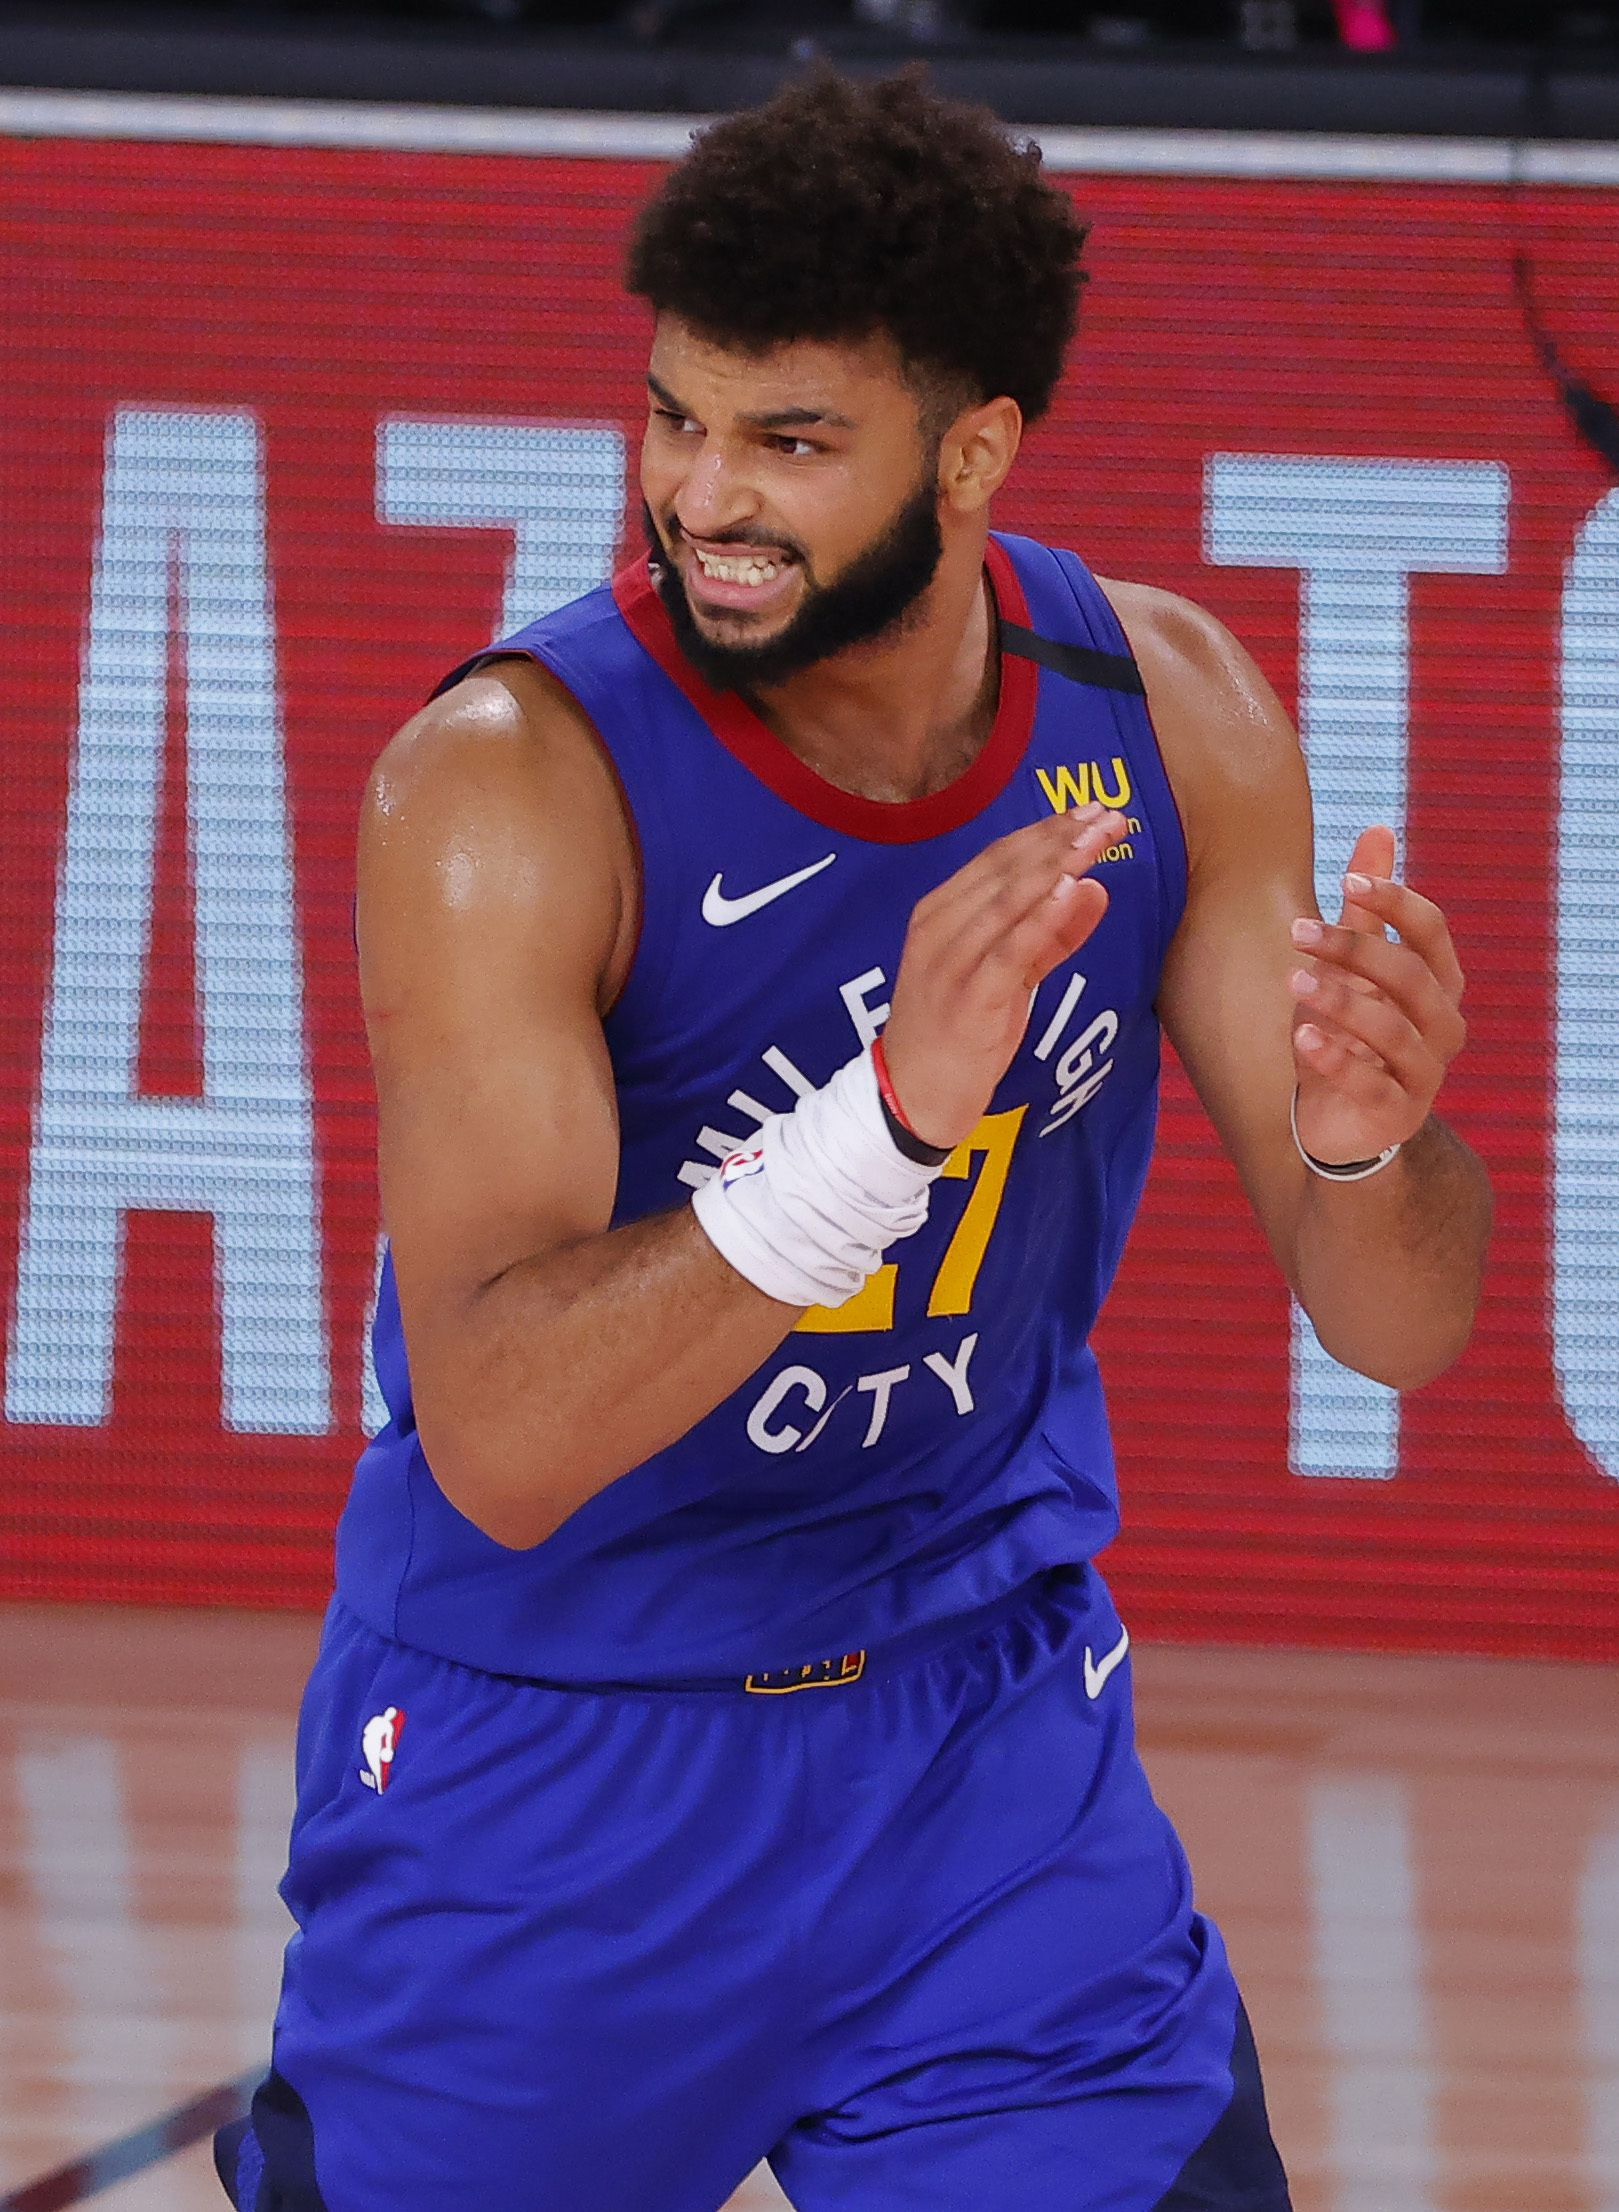 Denver Nuggets' Jamal Murray celebrates a 3-point basket against the Utah Jazz during the fourth quarter of Game 4 of an NBA basketball first-round playoff series, Sunday, Aug. 23, 2020, in Lake Buena Vista, Fla. (Kevin C. Cox/Pool Photo via AP)